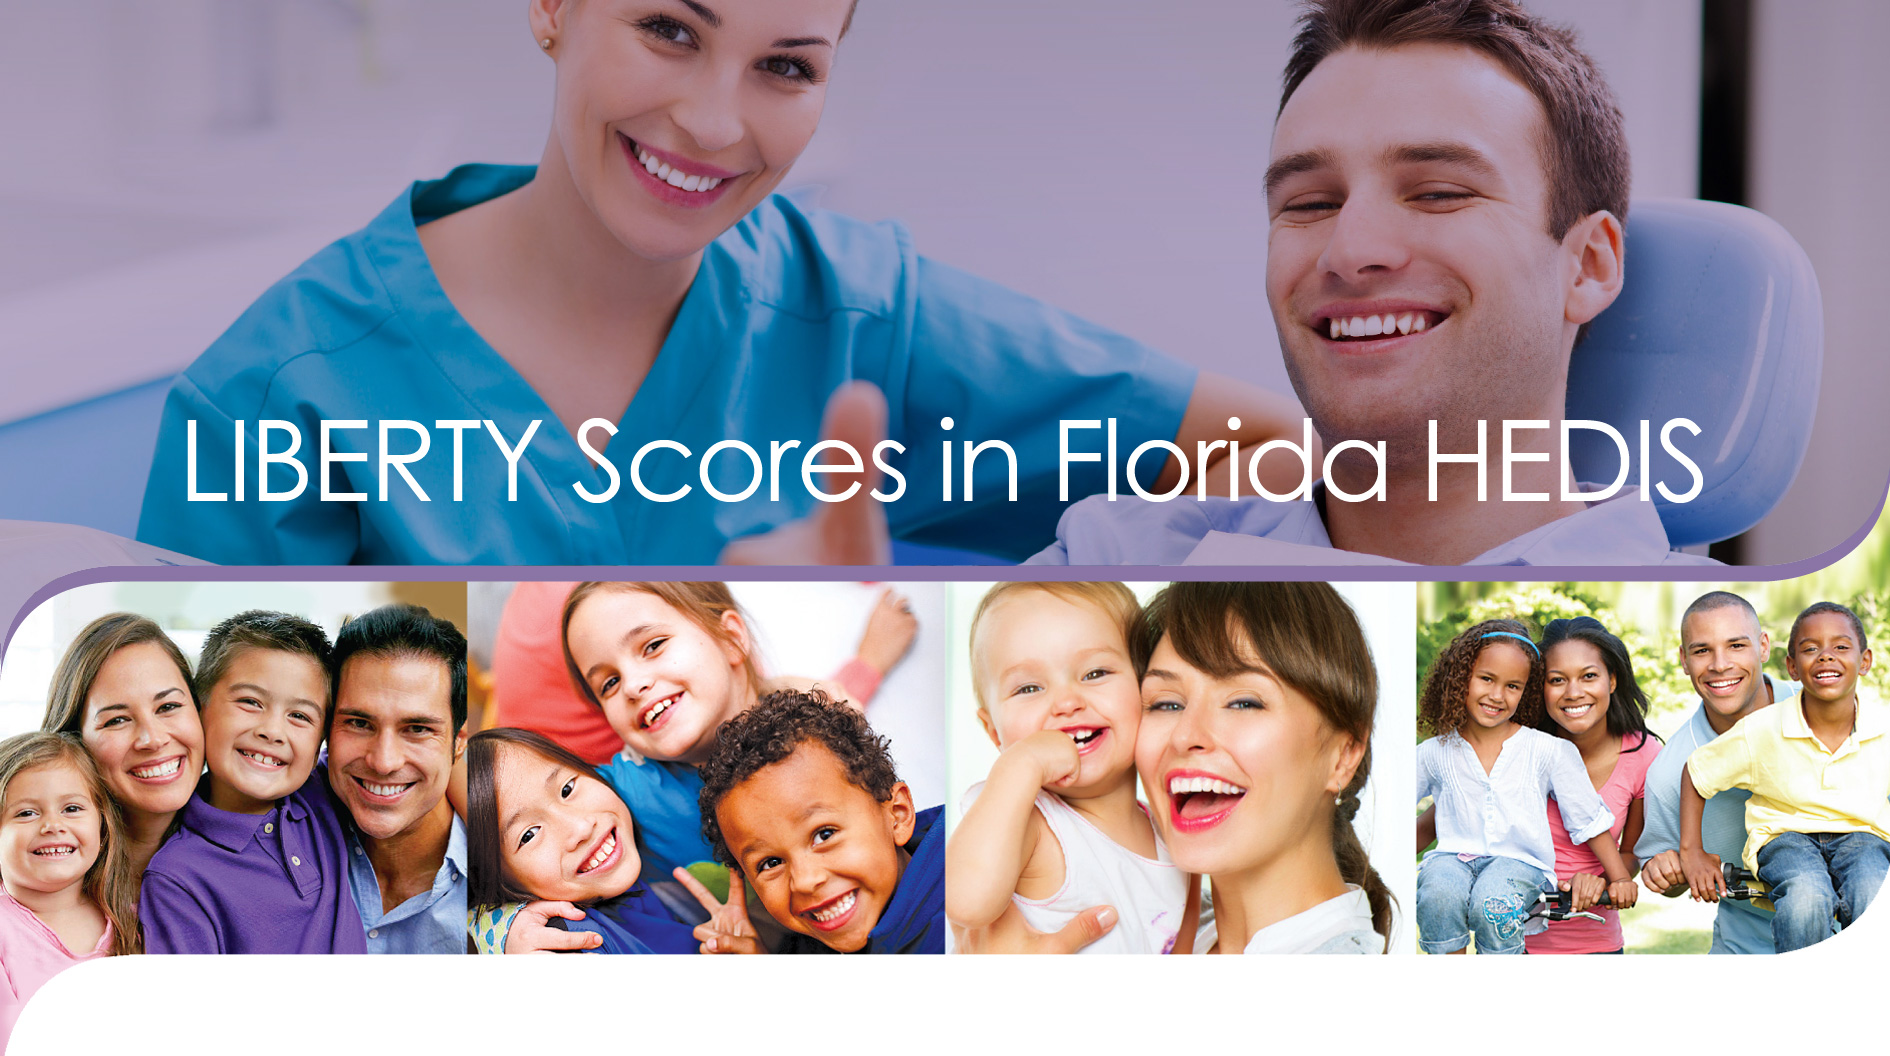 LIBERTY Scores in FL HEDIS